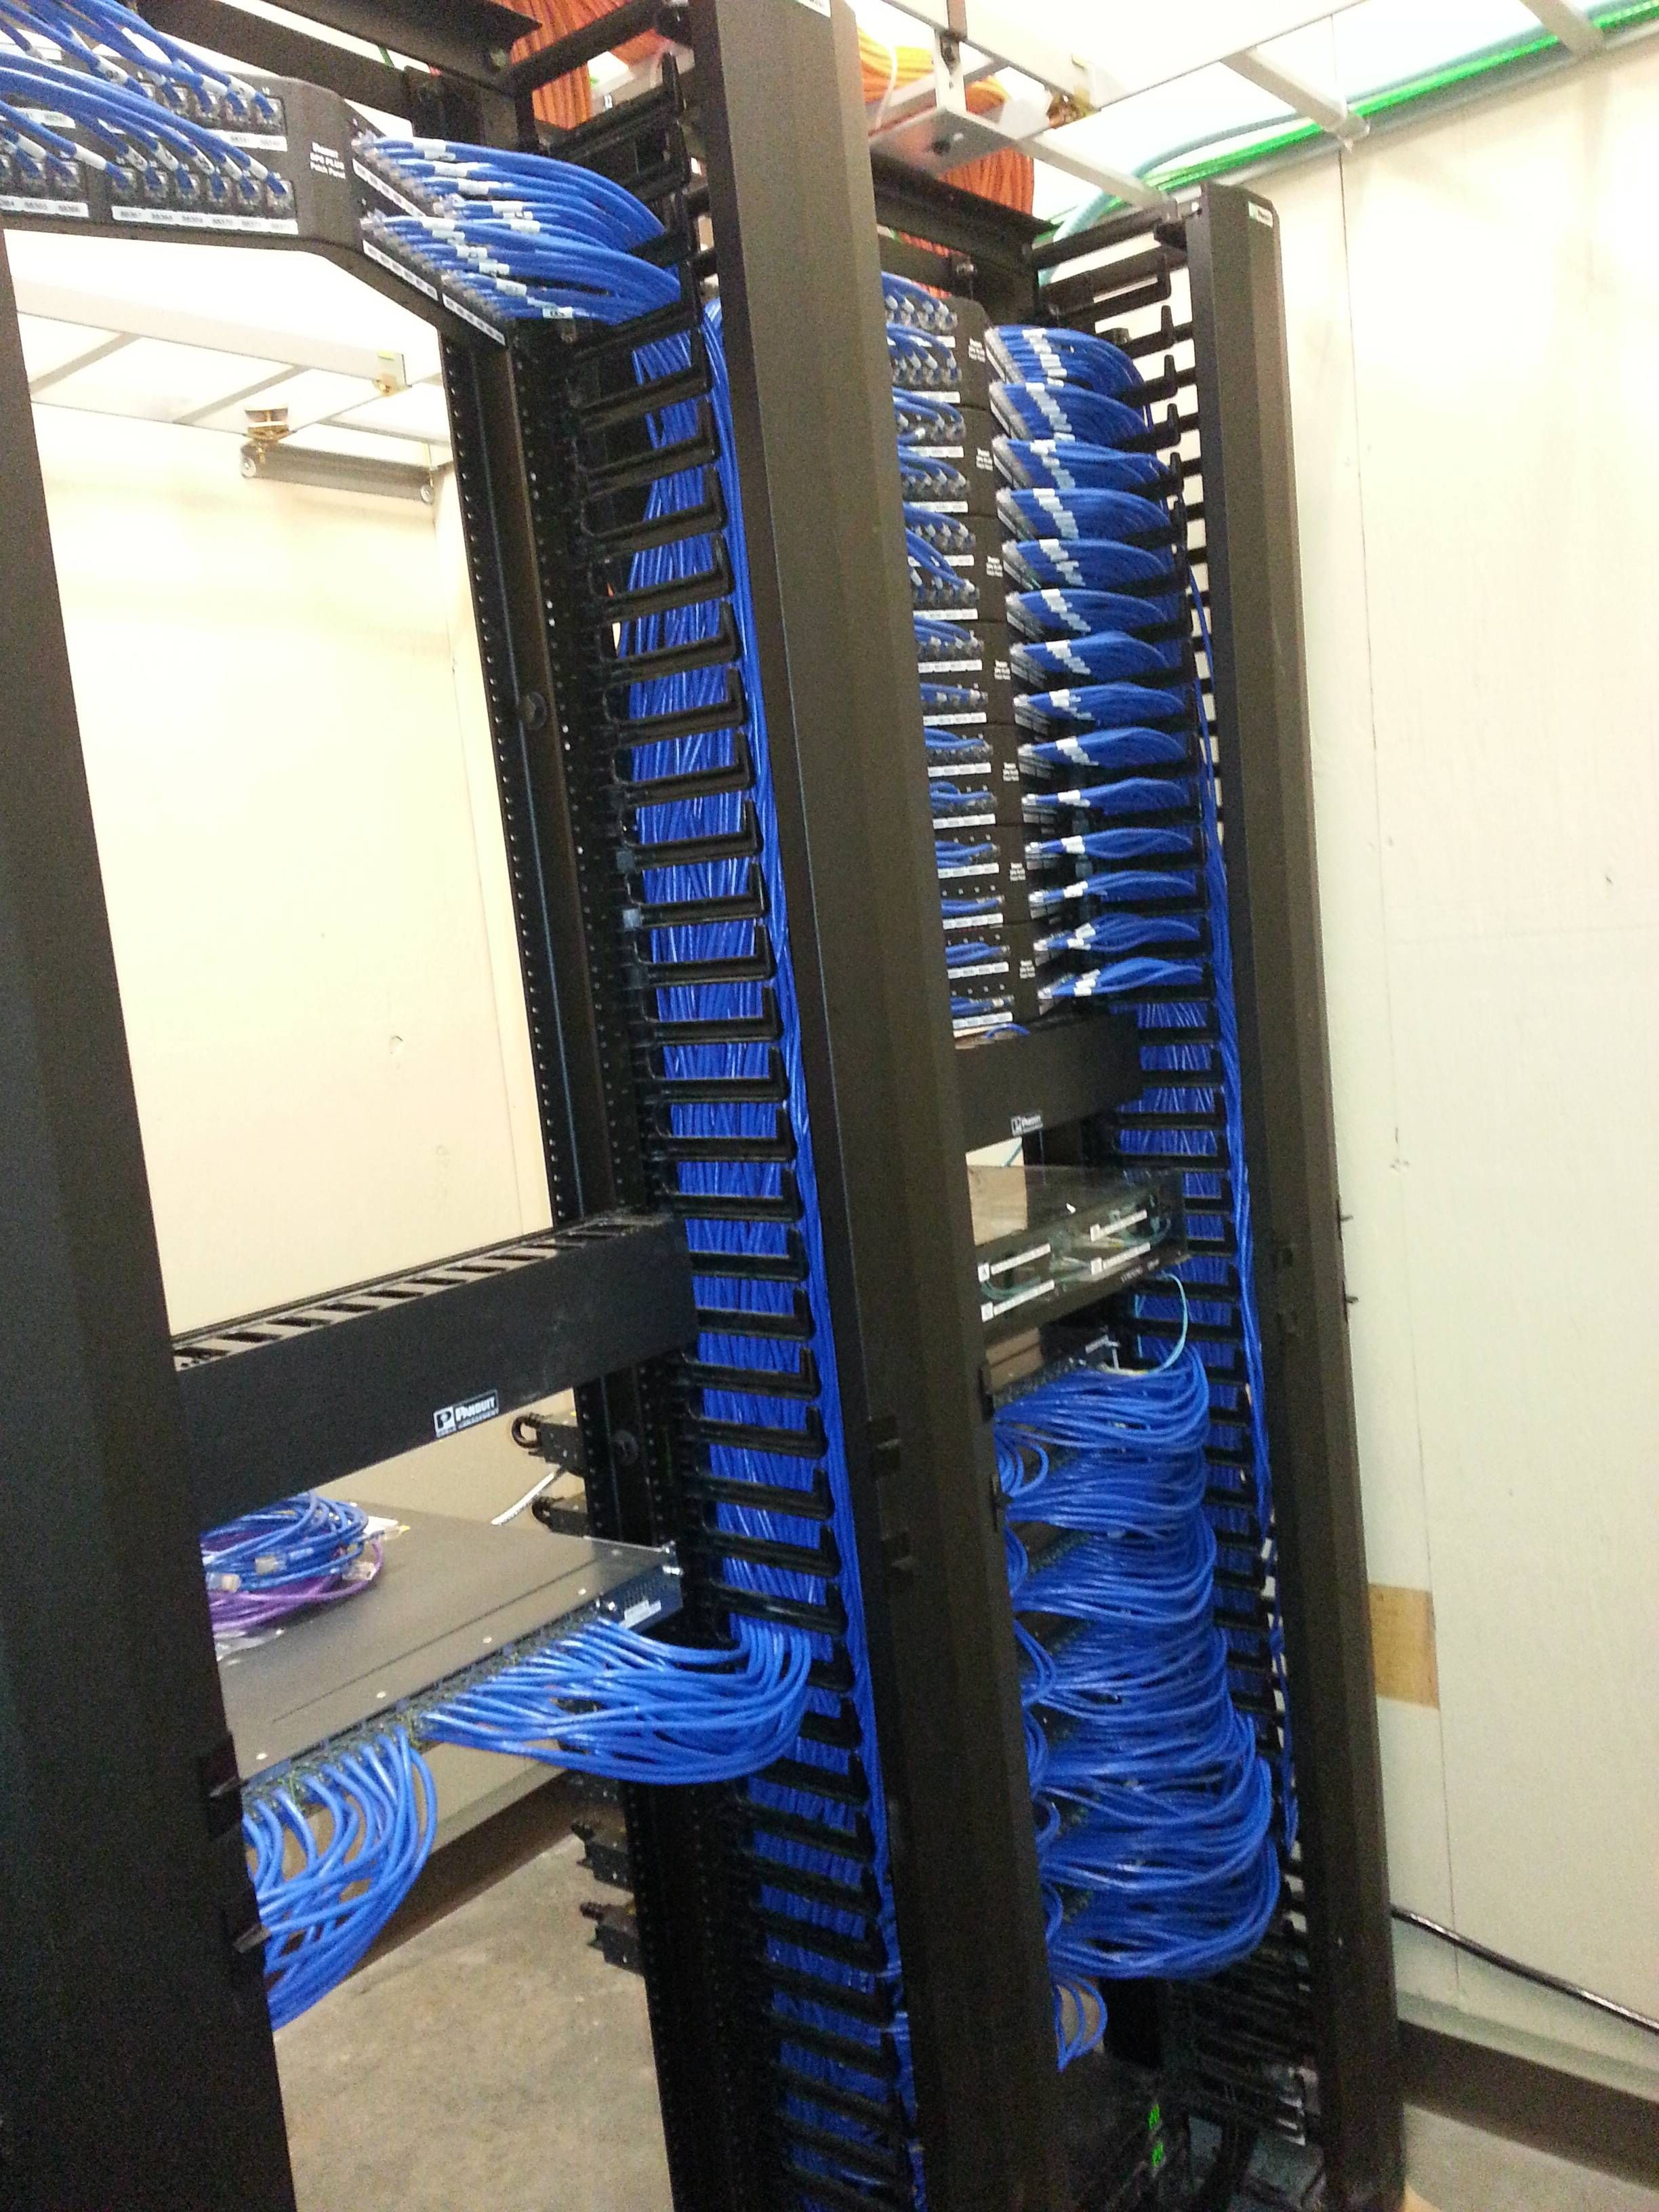 hight resolution of blue ethernet cables and patch panels galore looks neat and tidy